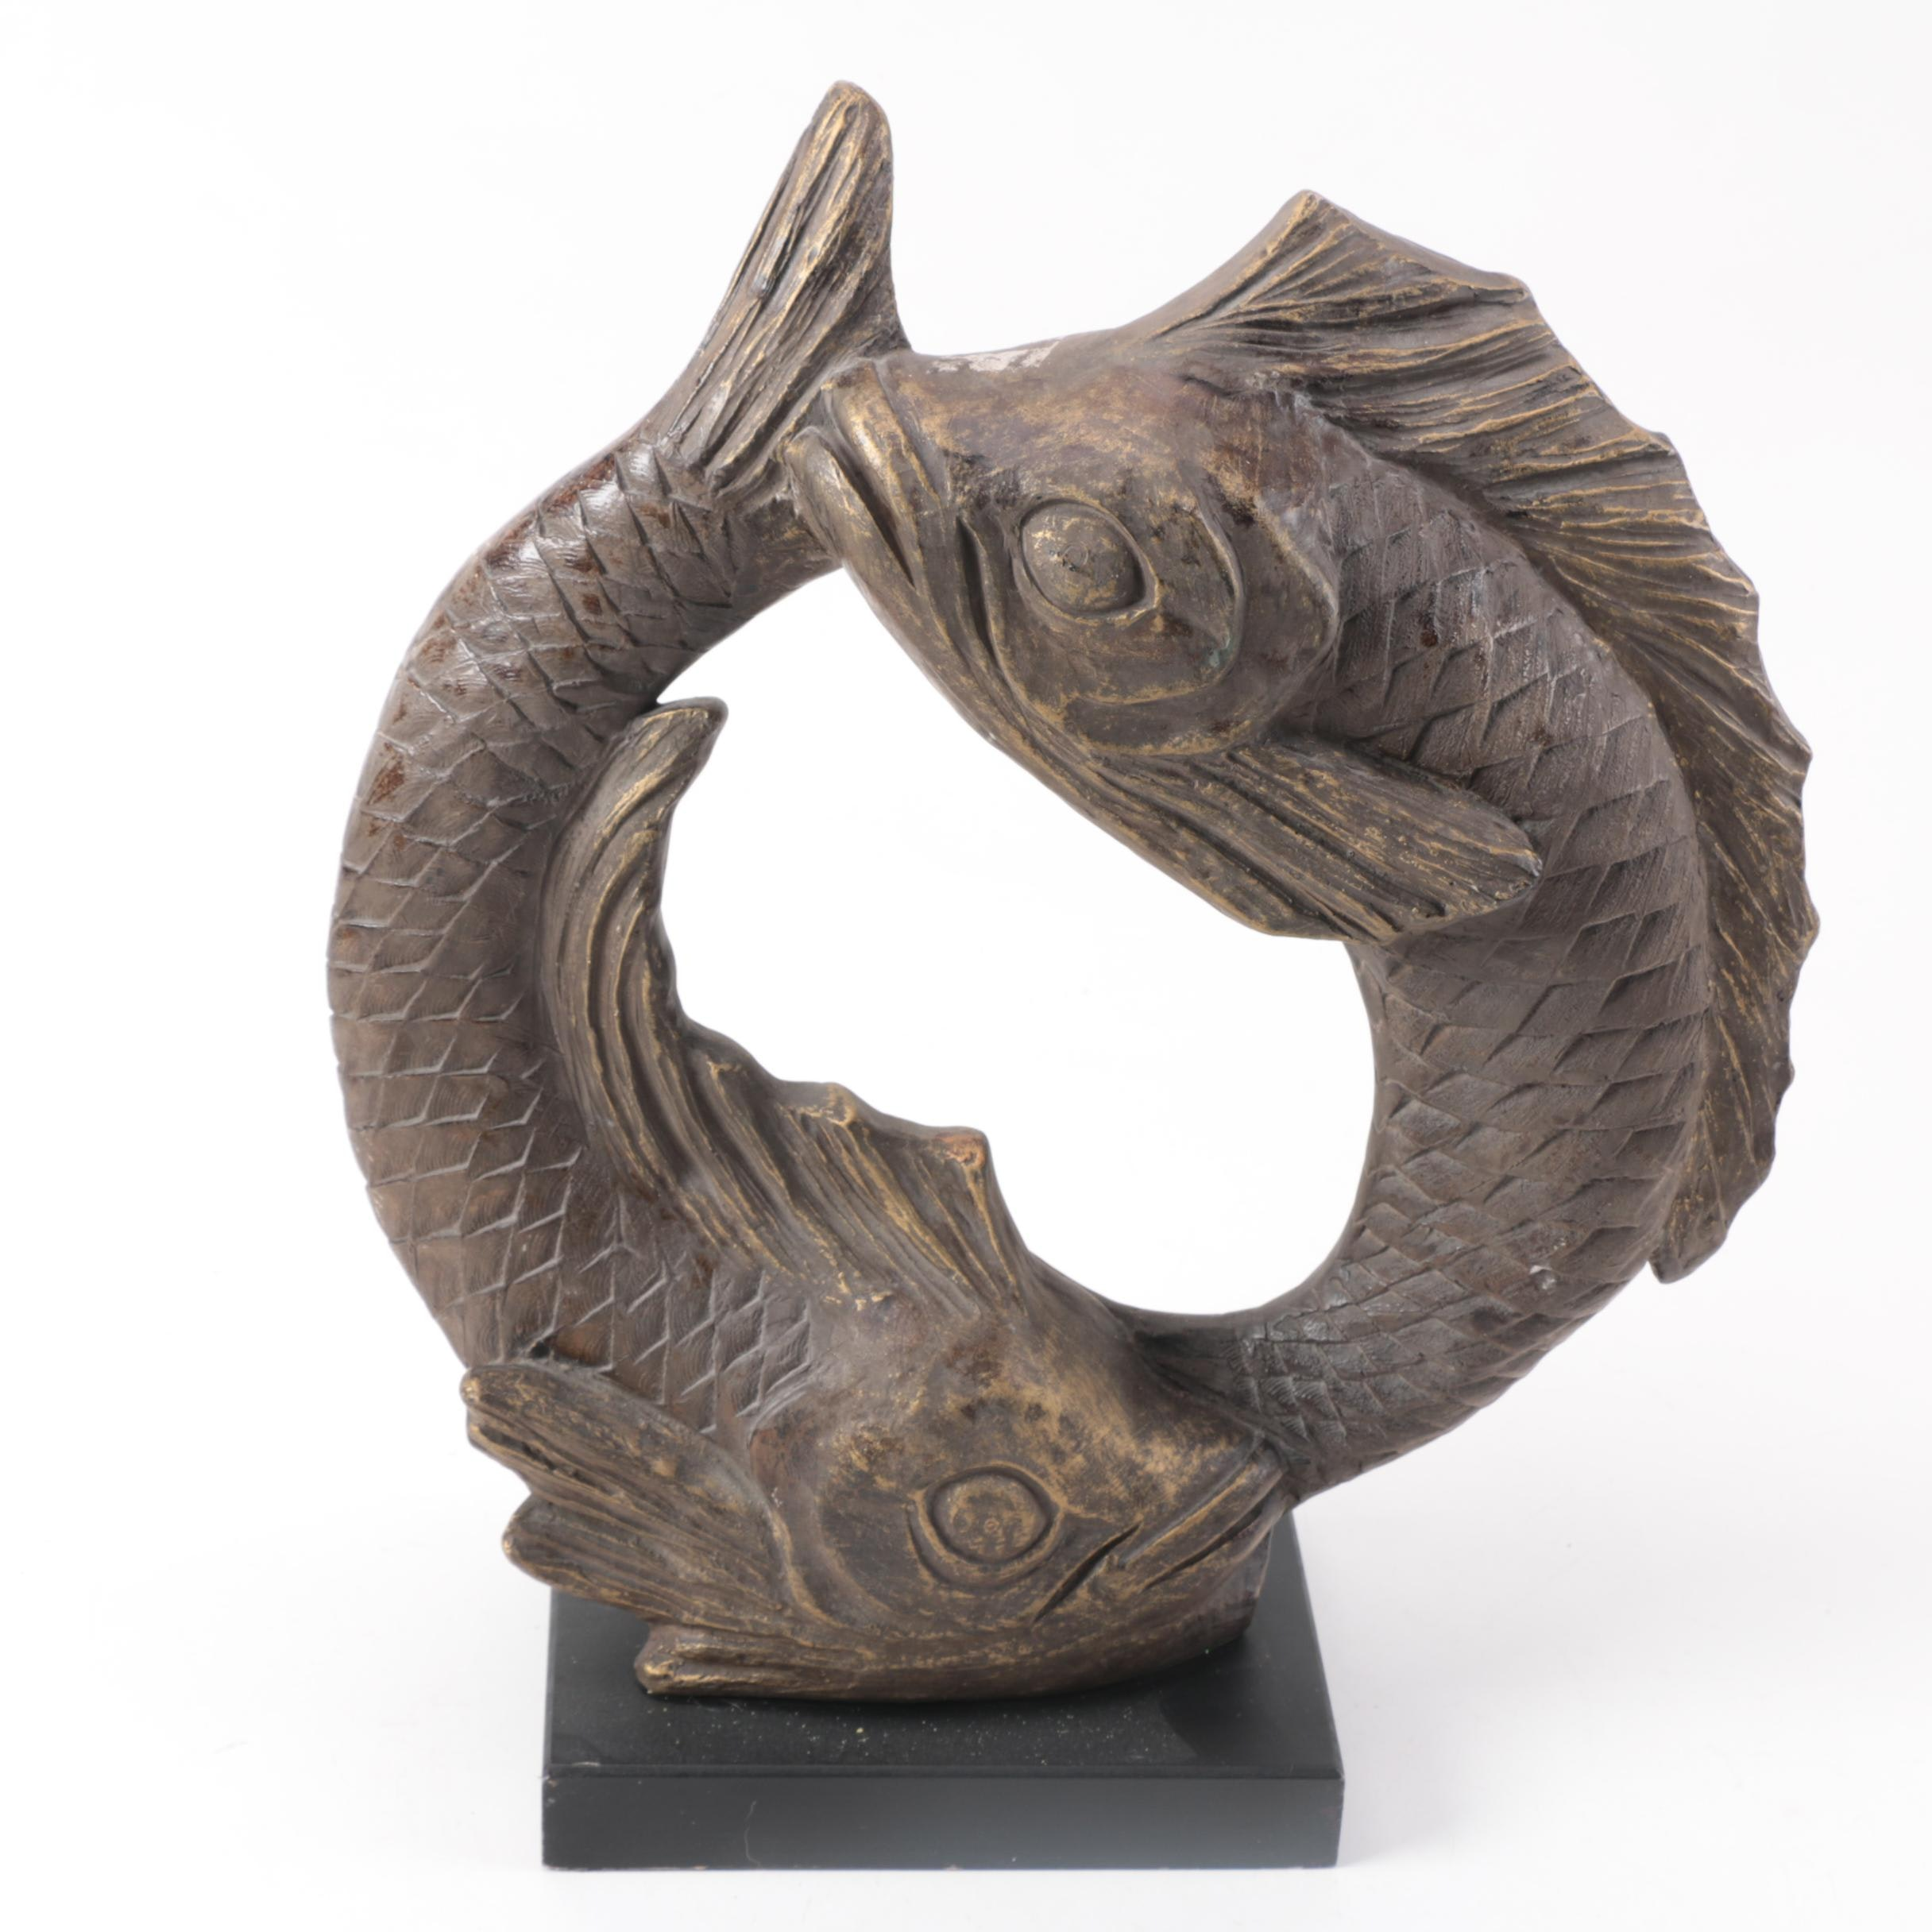 Reproduction David Fisher Plaster Pisces Fish Sculpture